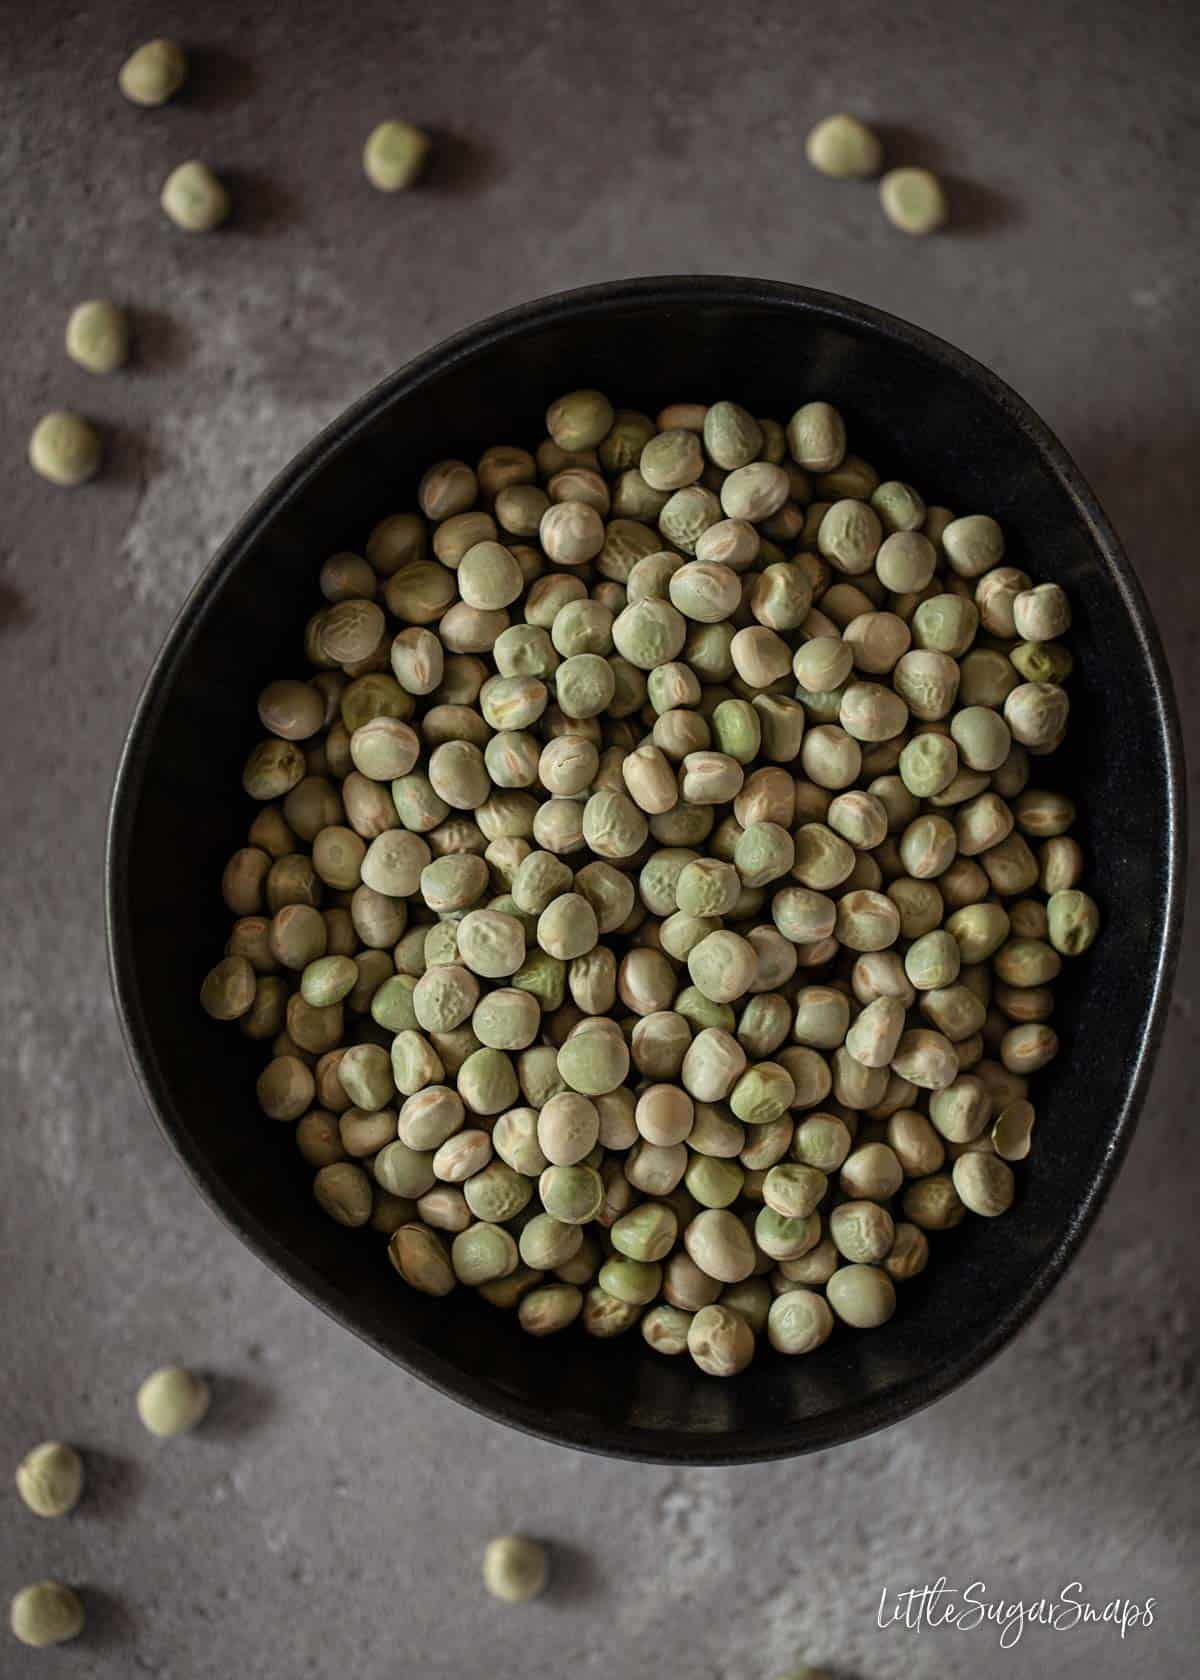 Dried green marrowfat pulses in a bowl